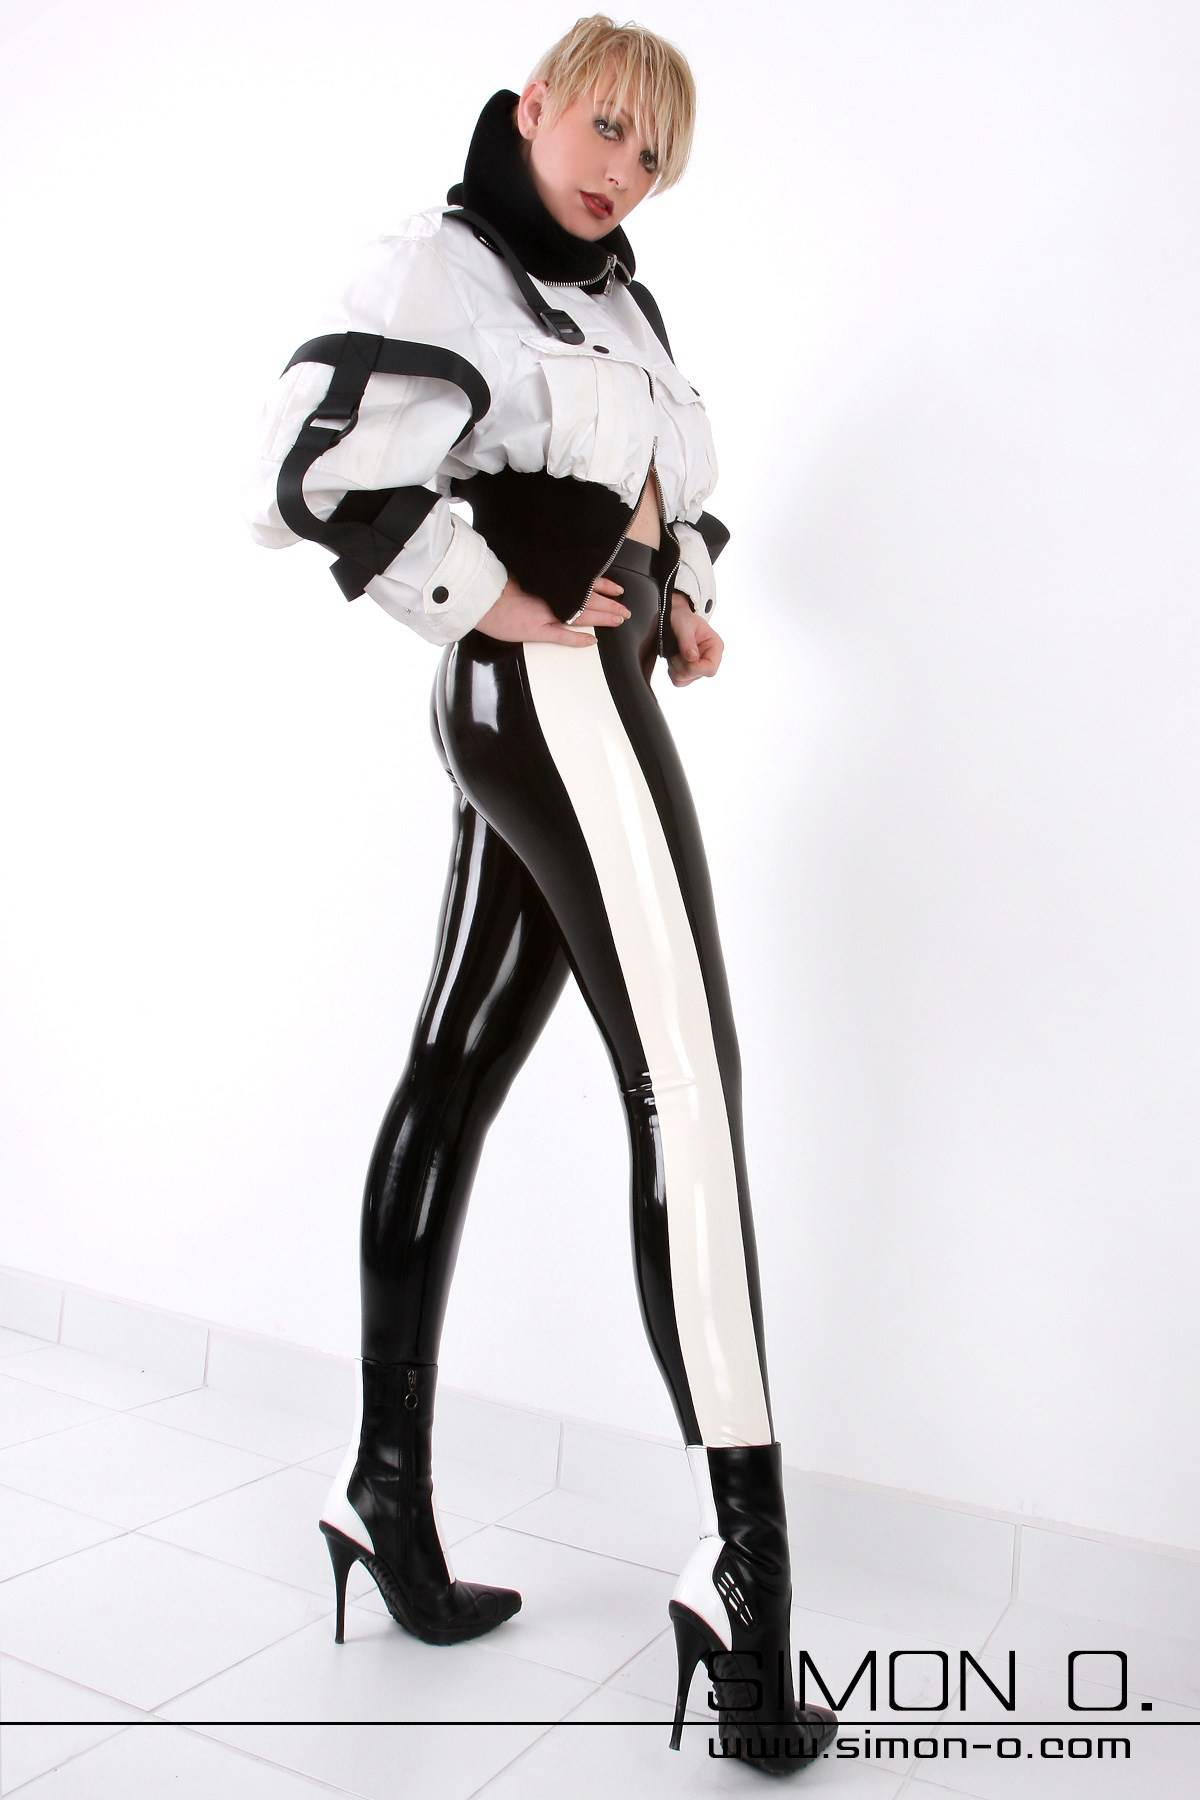 A woman in a black skintight shiny latex leggings with white stripes at the sides